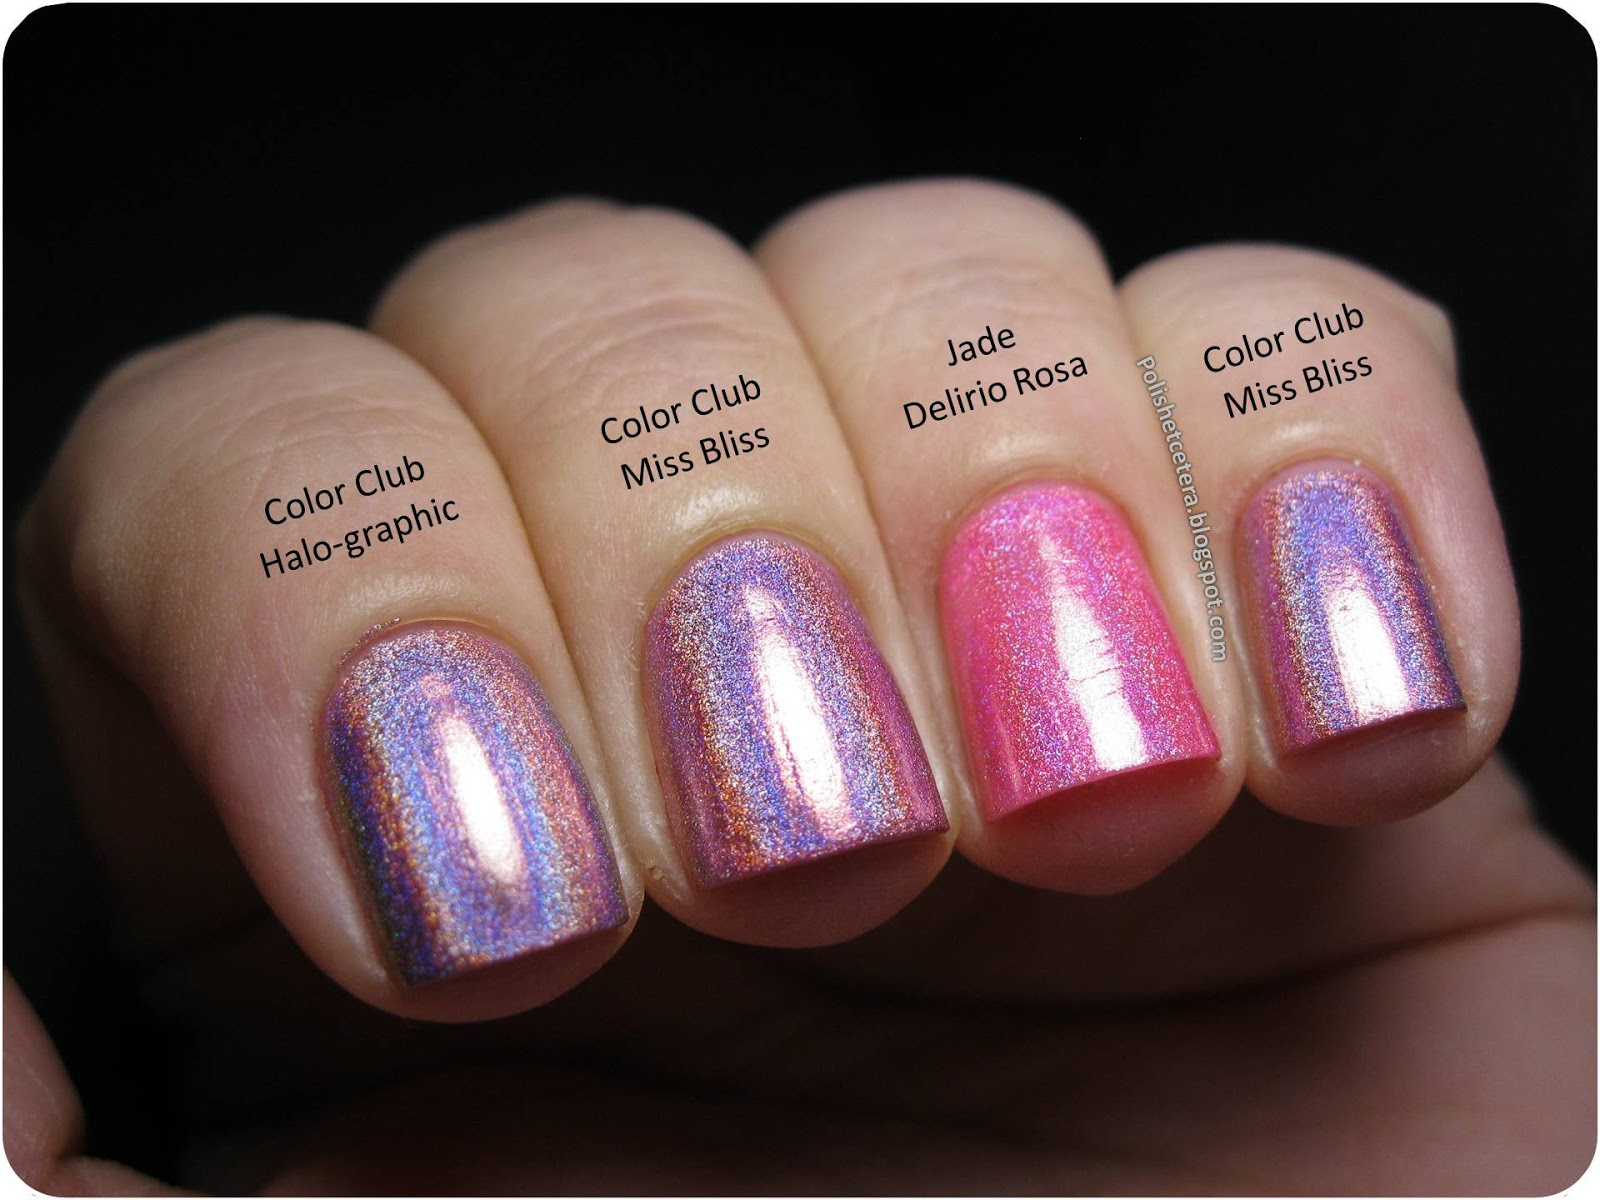 Color Club Holo Hues 2013 Swatches and Comparisons! - Polish Etc.